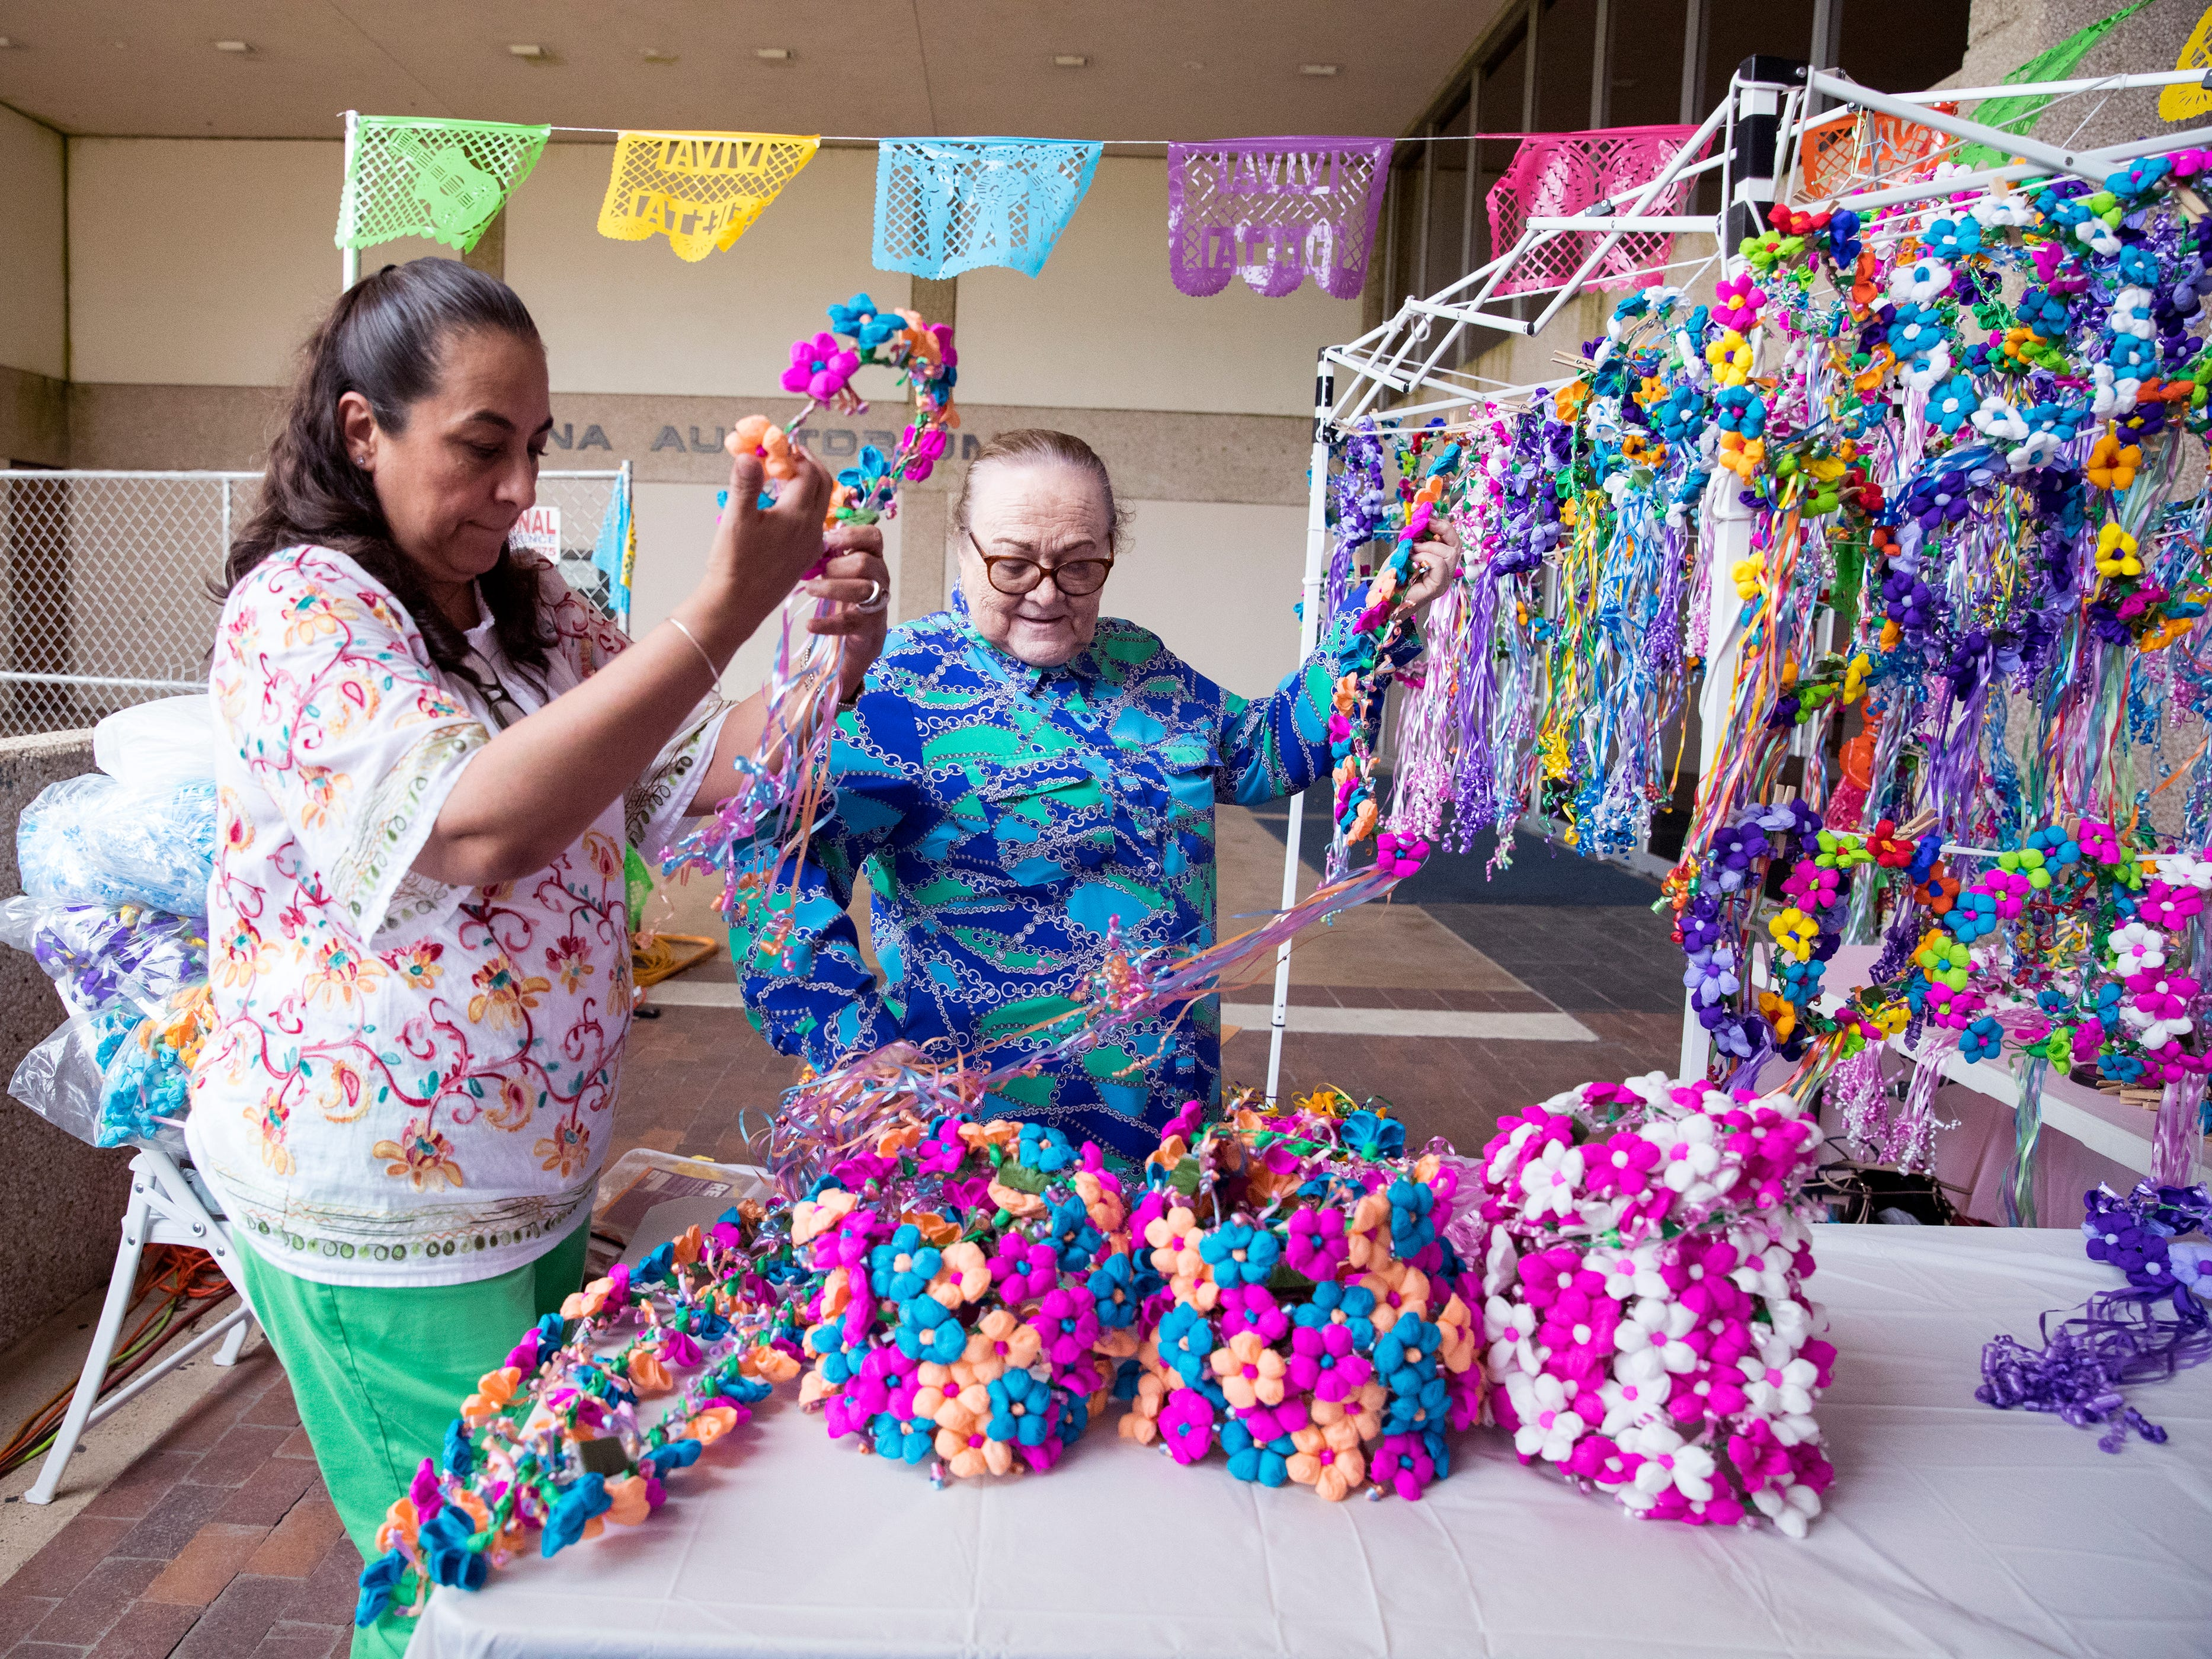 Lorena Rodriguez (left) and Elena Marie sets up their booth in The Mercado in the American Bank Center before Fiesta de la Flor opens on Friday, April 12, 2019. The festival is in honor of the late Tejano singer Selena Quintanilla-Perez. The two-day music event is held in Corpus Christi, Texas.